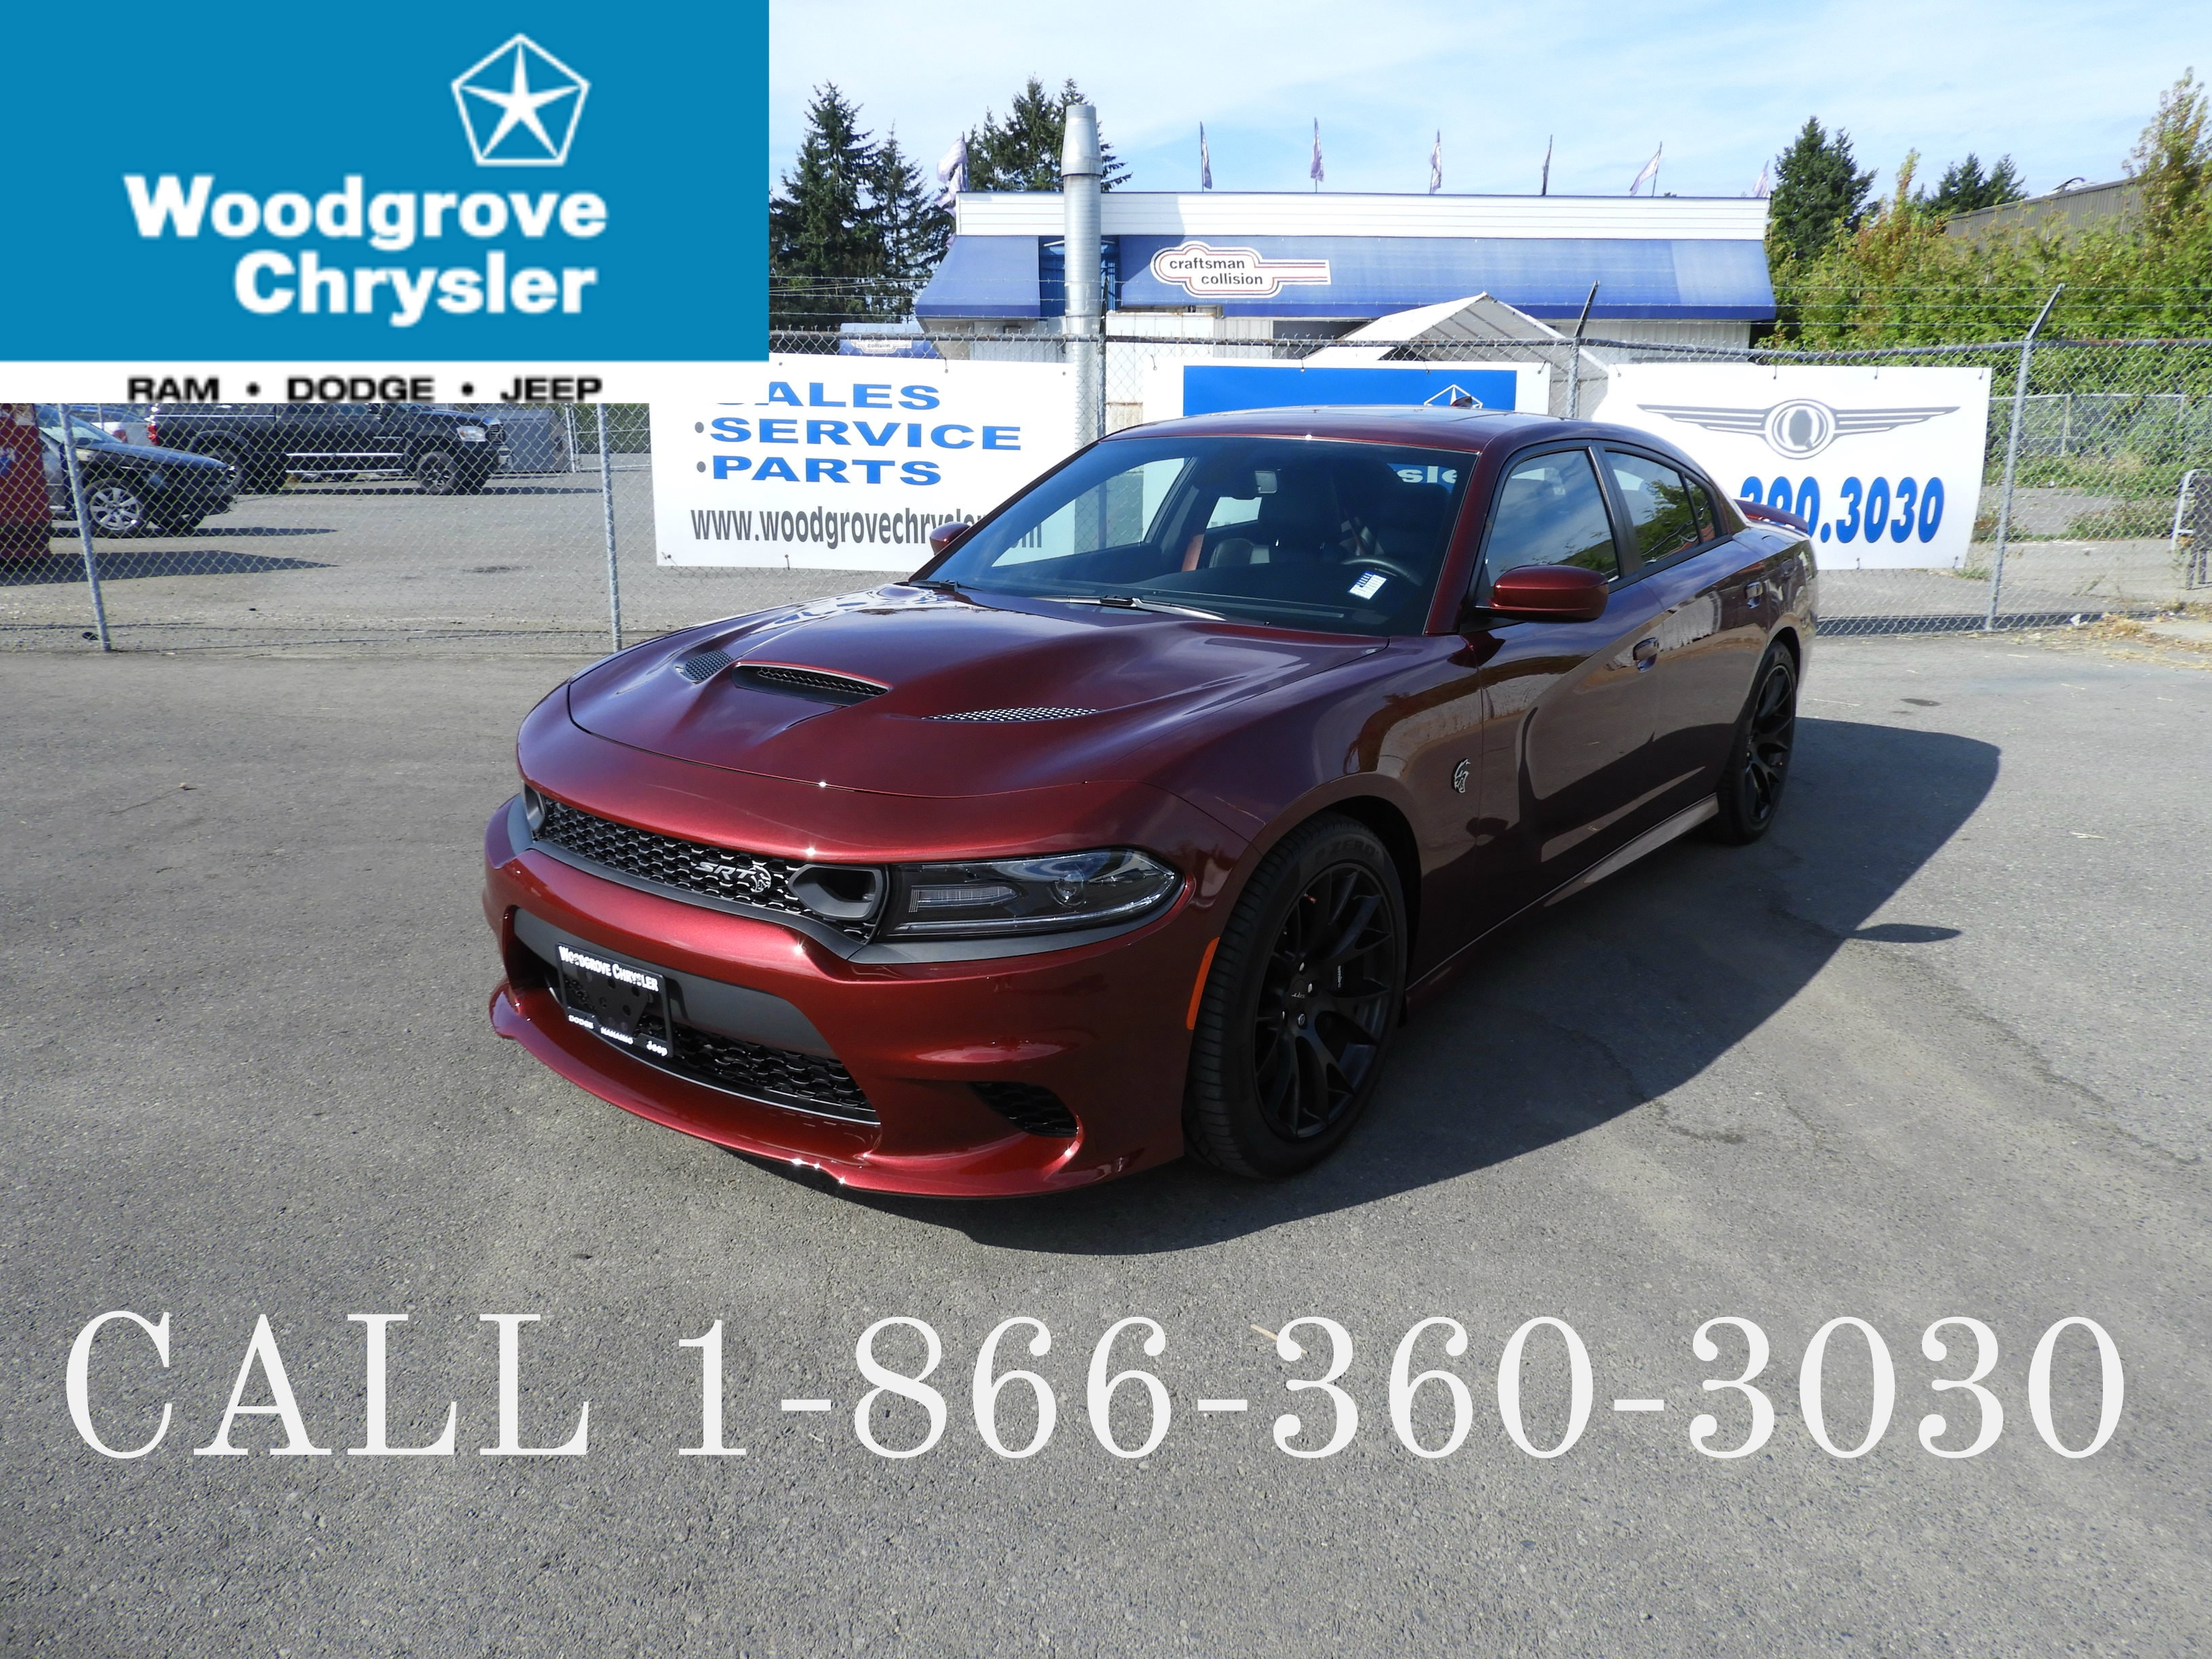 2019 Dodge Charger SRT Hellcat One Owner, No Accidents Sedan